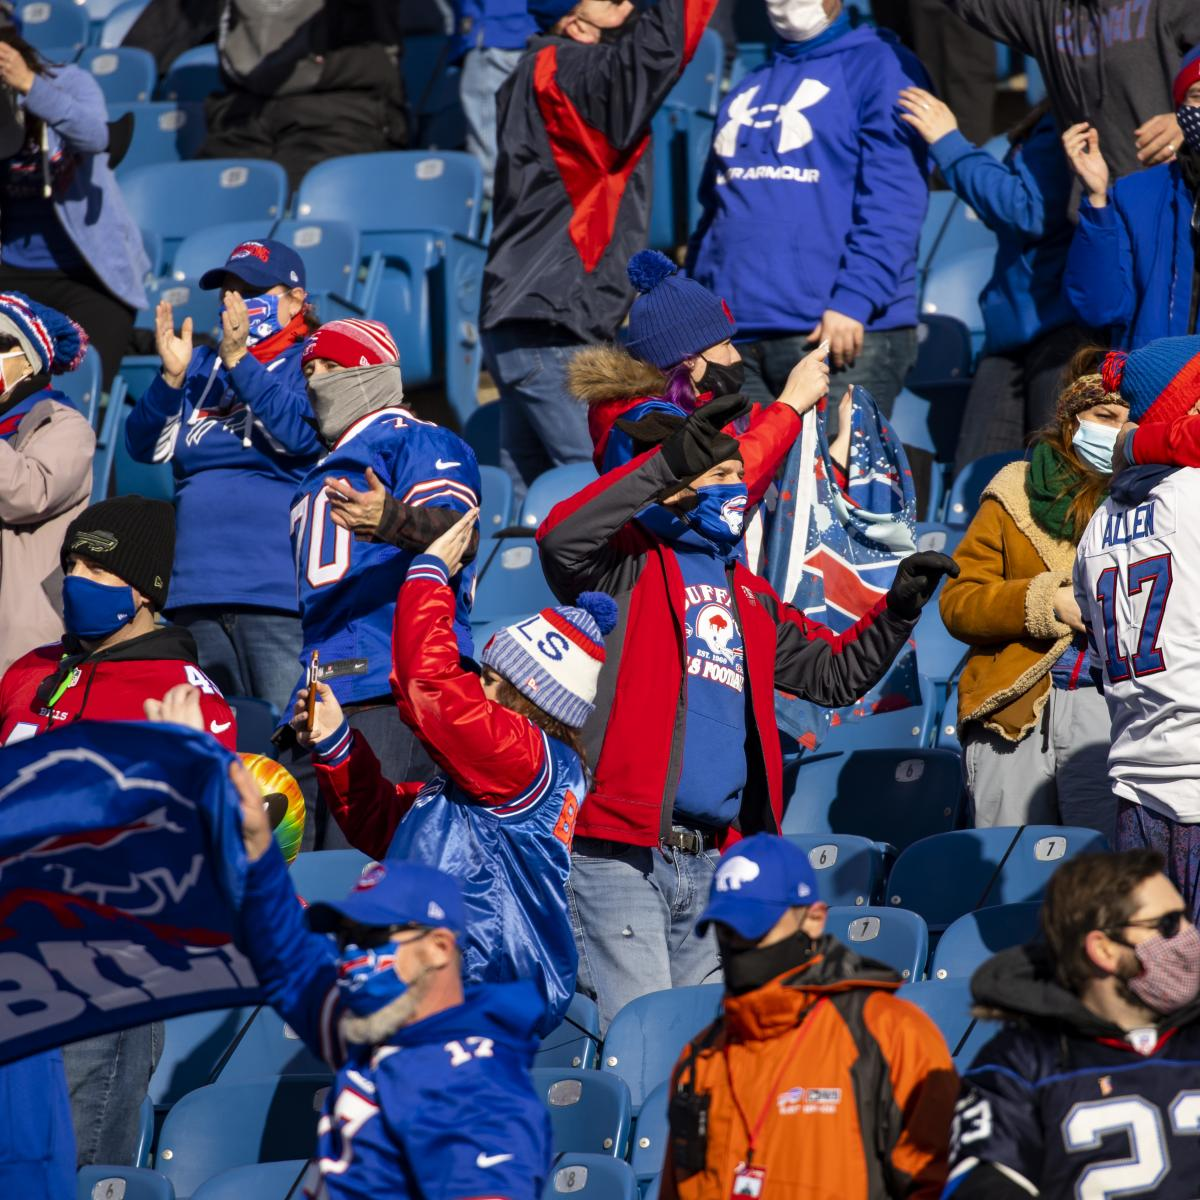 Video: Bills Fan Rings Bell, Smashes Table After Completing Cancer Treatment